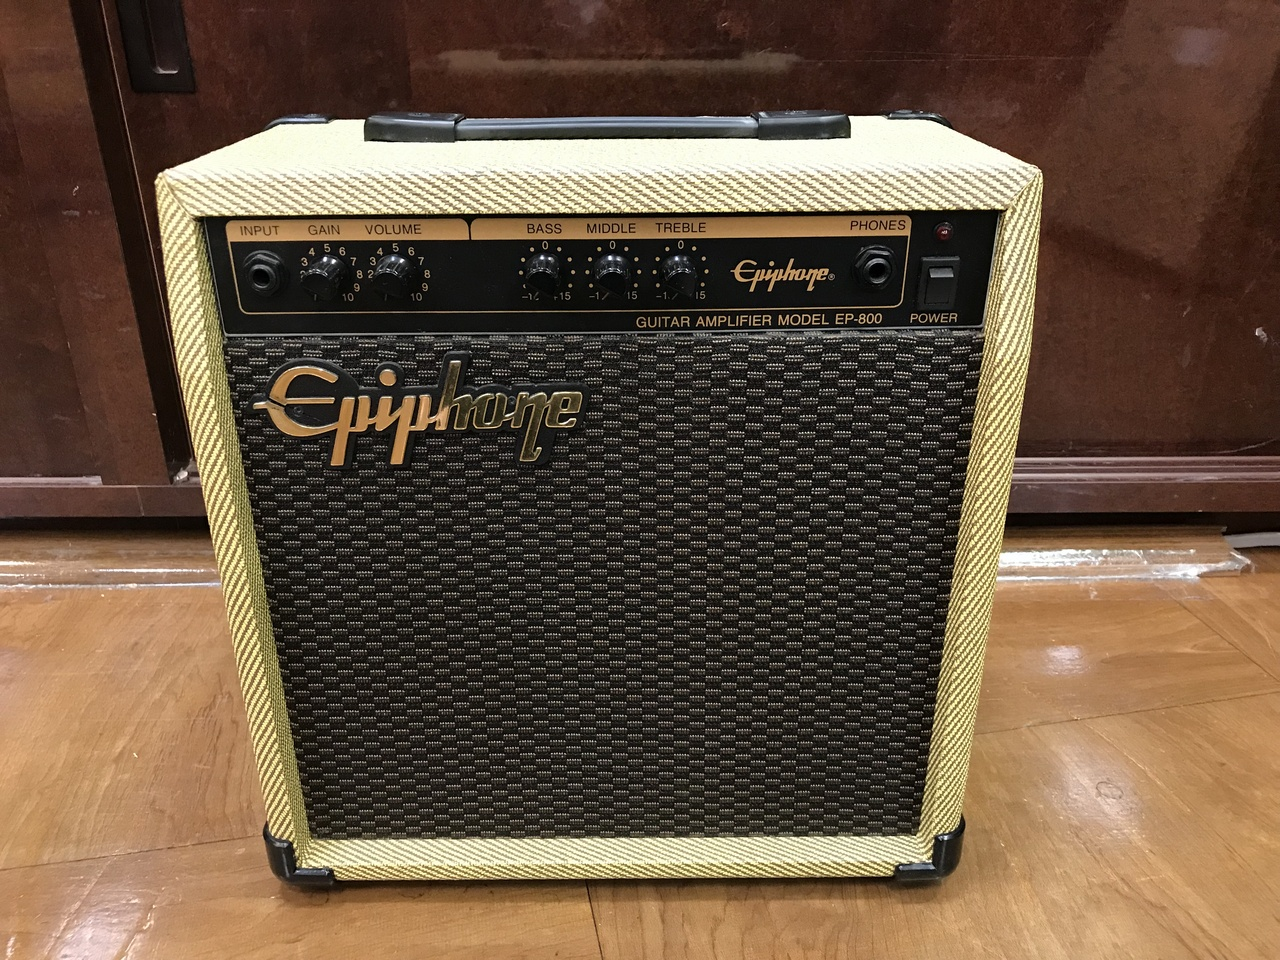 Epiphone EP-800 Guitar Amplifier [used article]